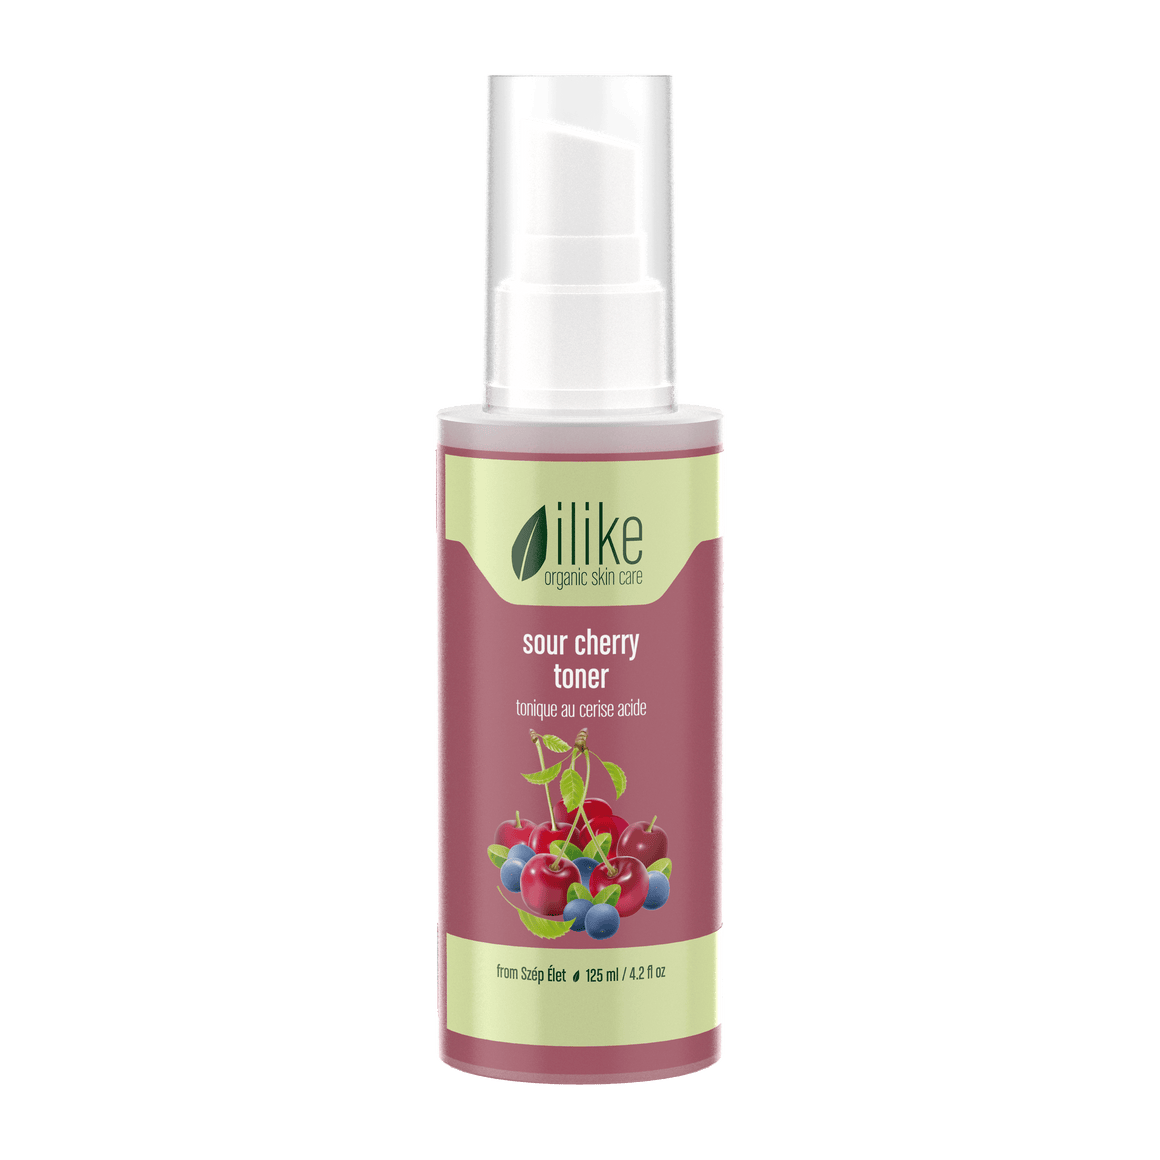 Ilike Organic Skin Care Sour Cherry Toner